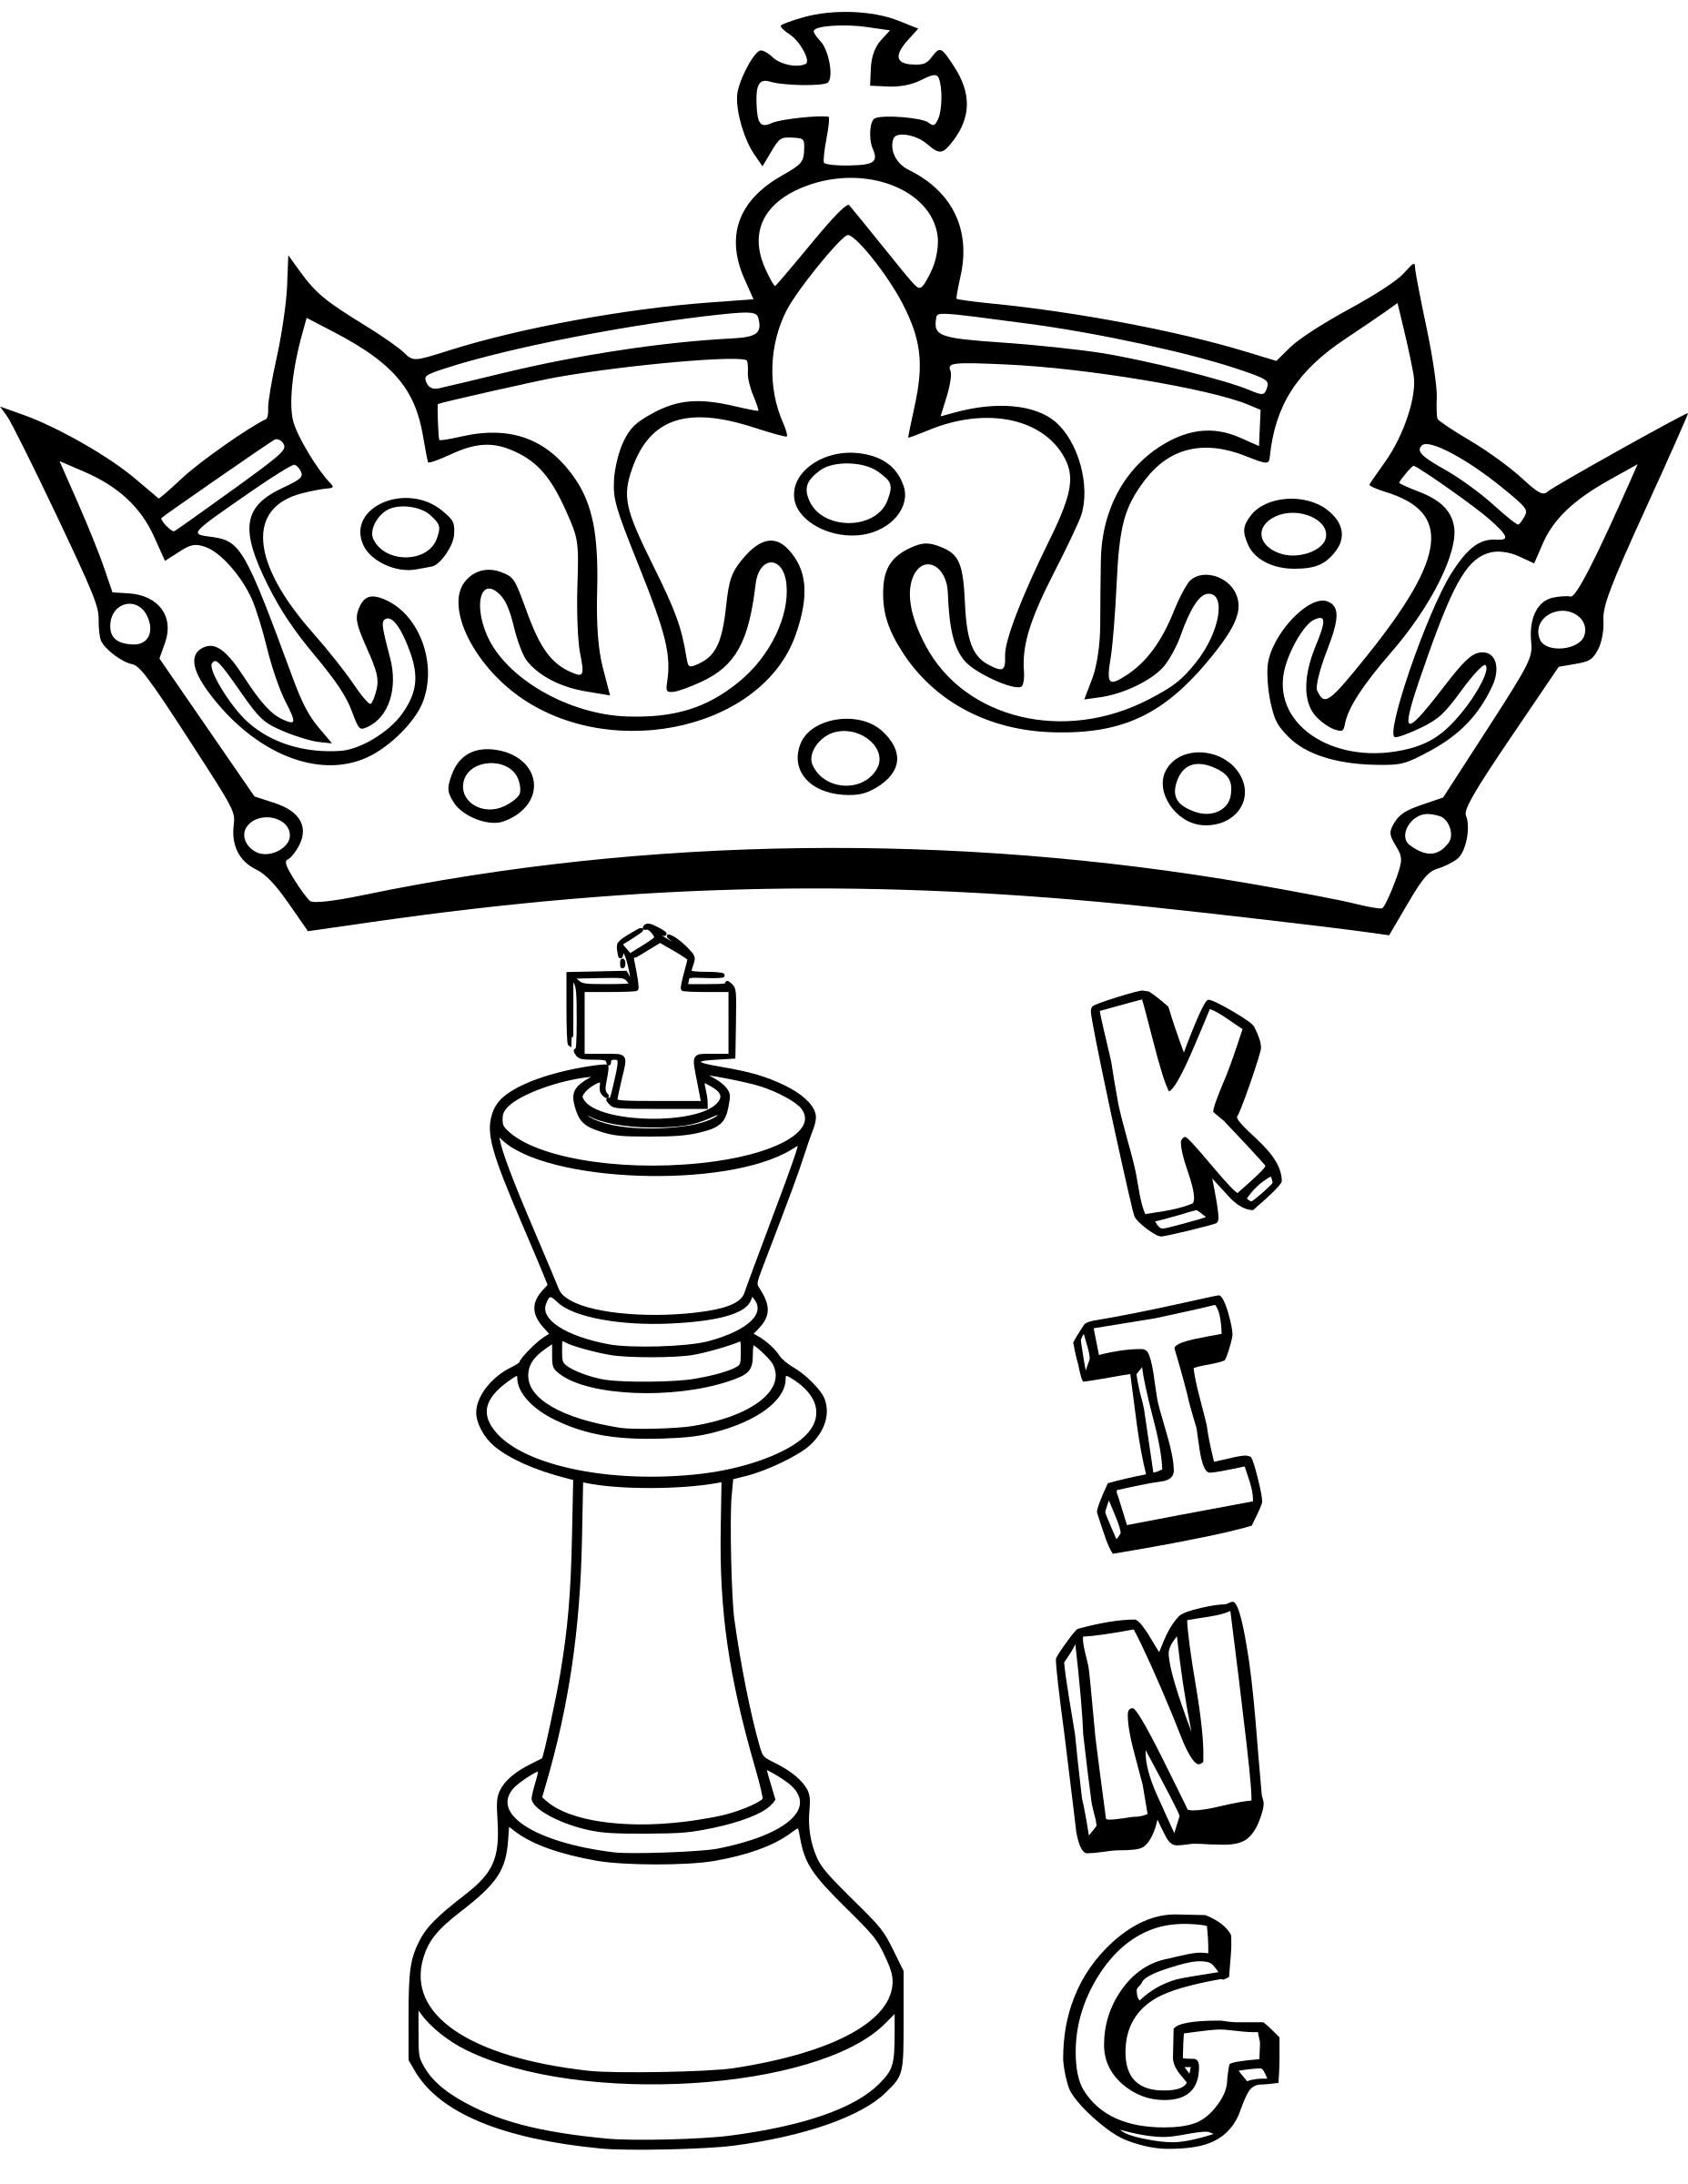 Chess coloring book  / Dibujo Ajedrez para colorear -4- by DG-RA